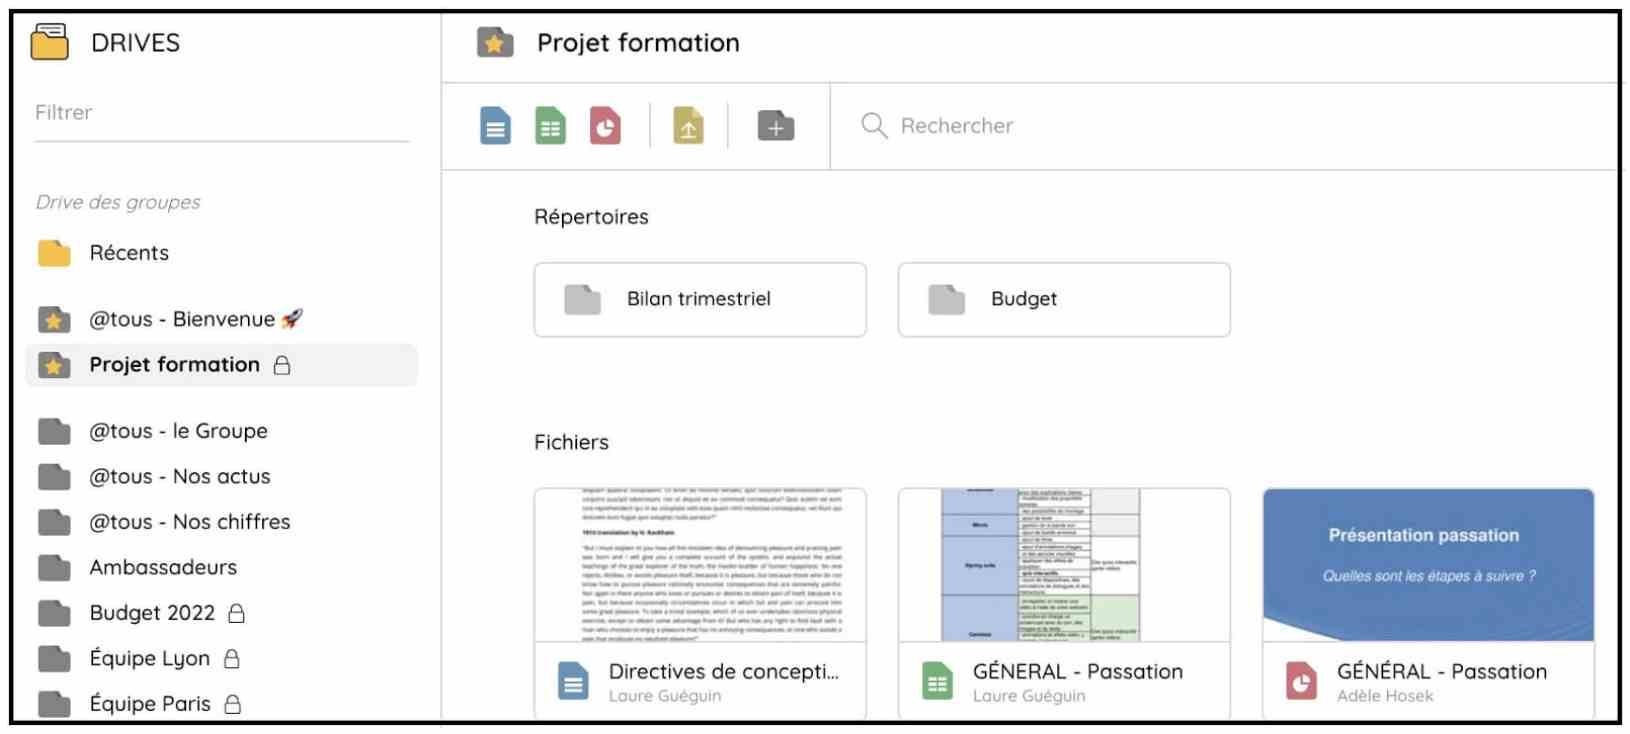 Share essential documents for your project